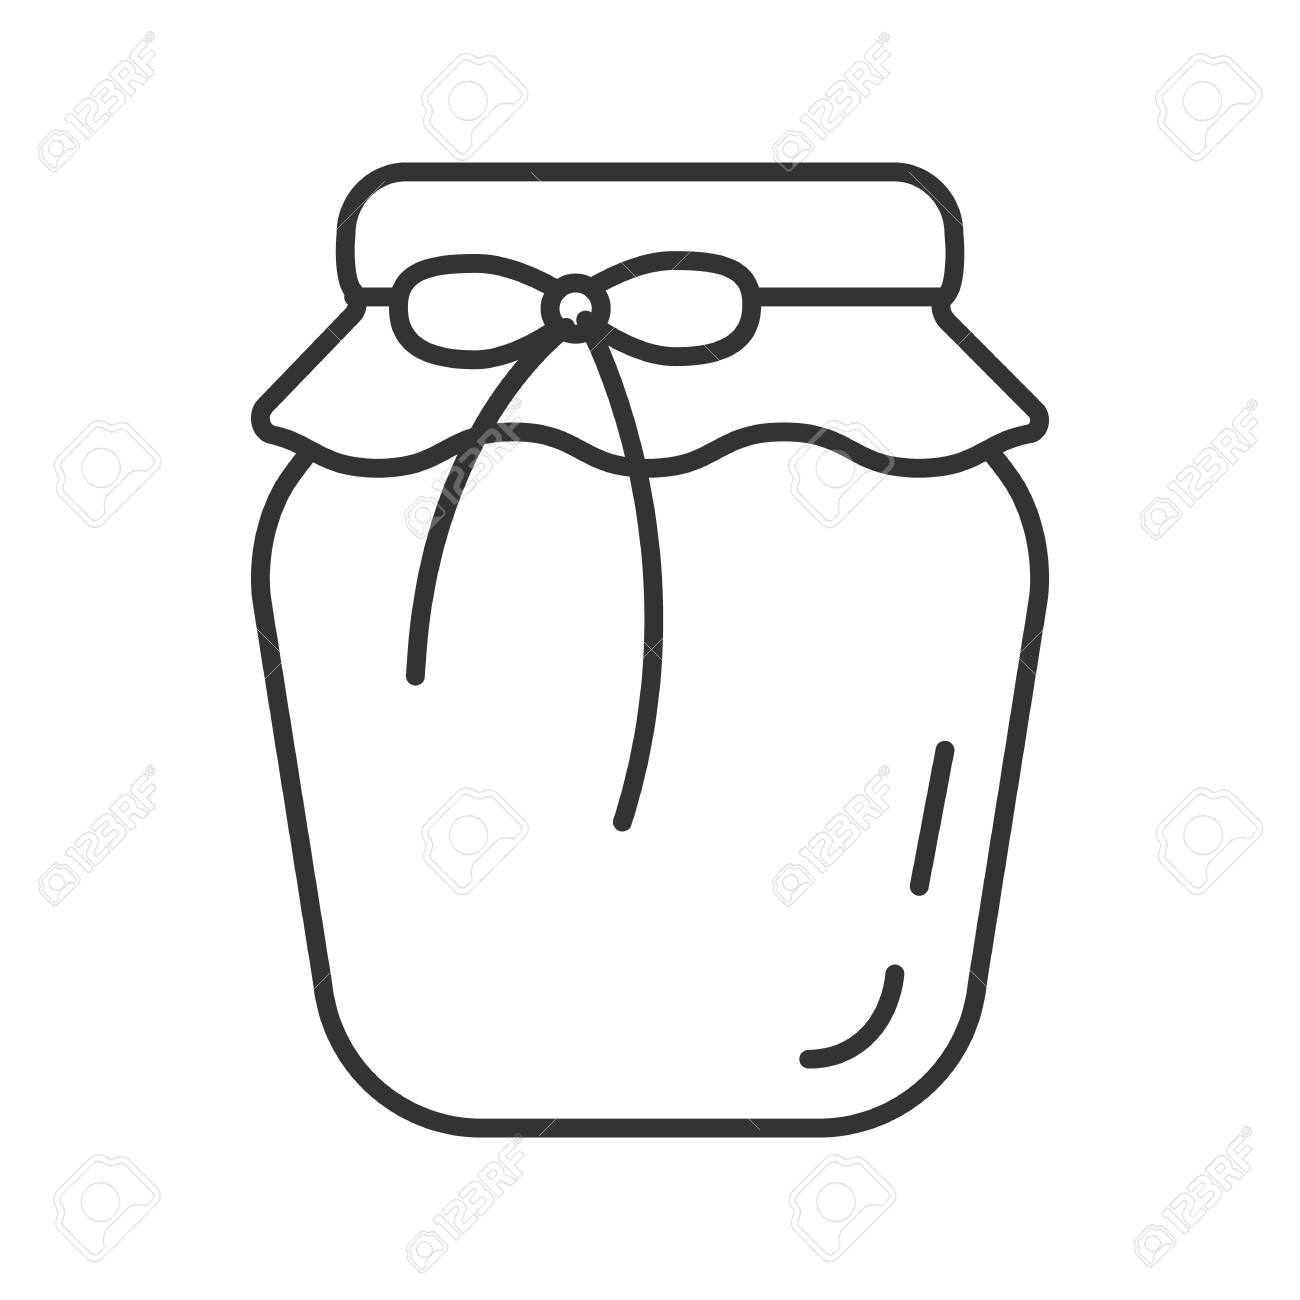 Strawberry jam jar linear icon. Thin line illustration. Fruit preserve. Contour symbol. Vector isolated outline drawing - 104121772